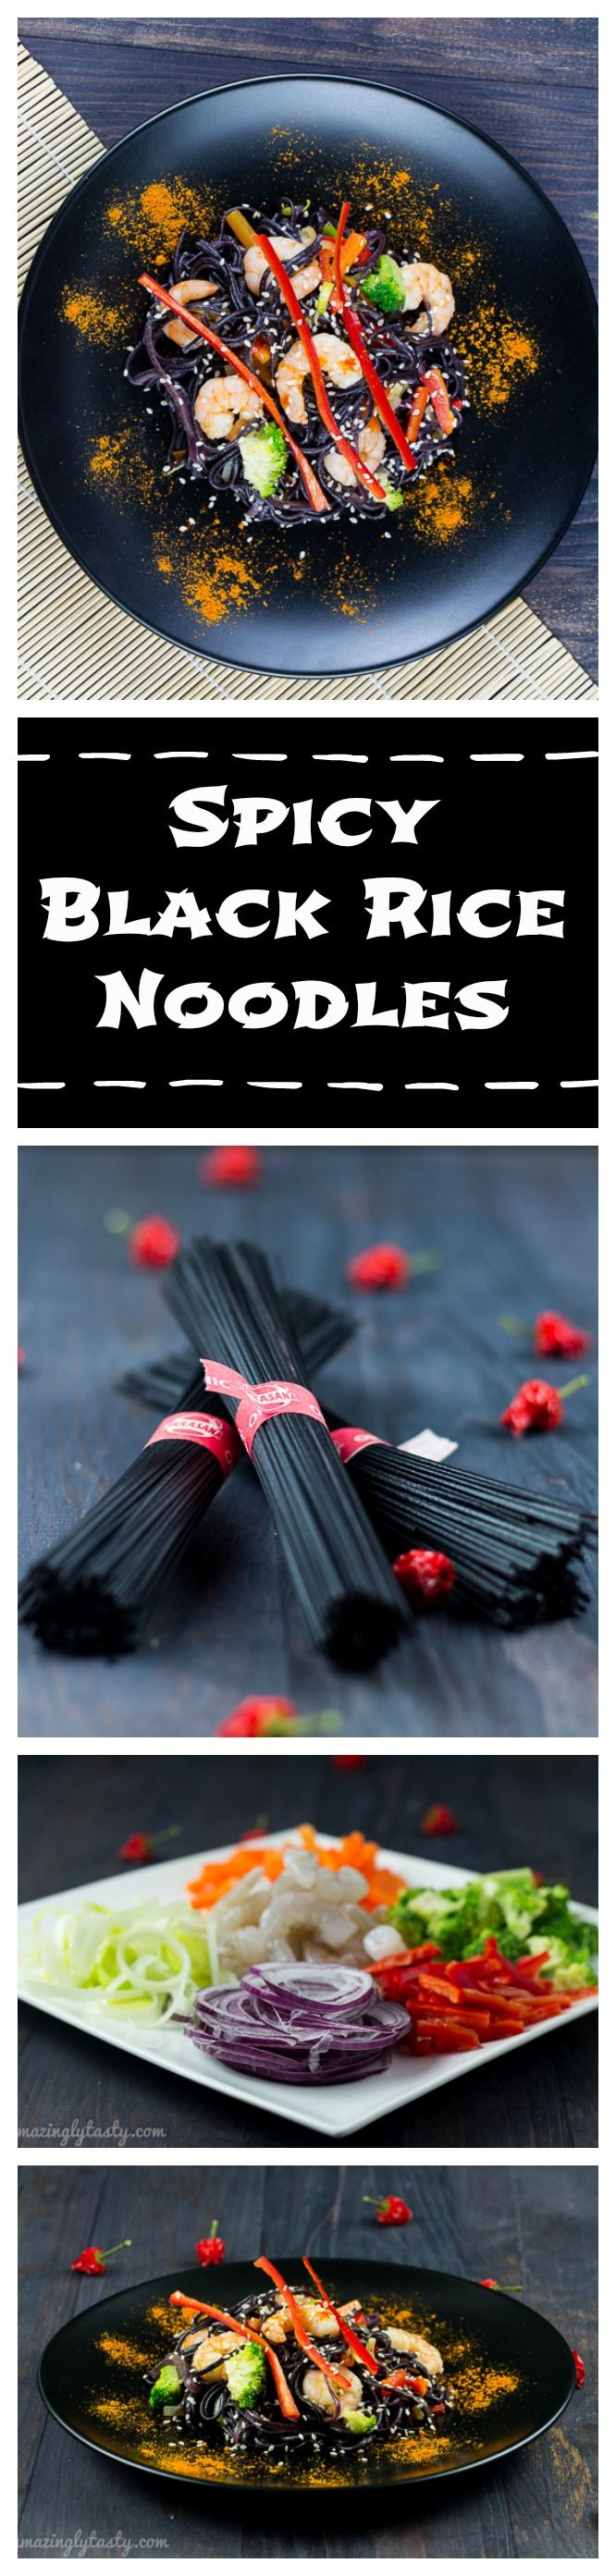 Spicy Black Rice Noodles with prawns and vegetables. It is easy to make and it tastes fantastic. It is gluten and dairy free.